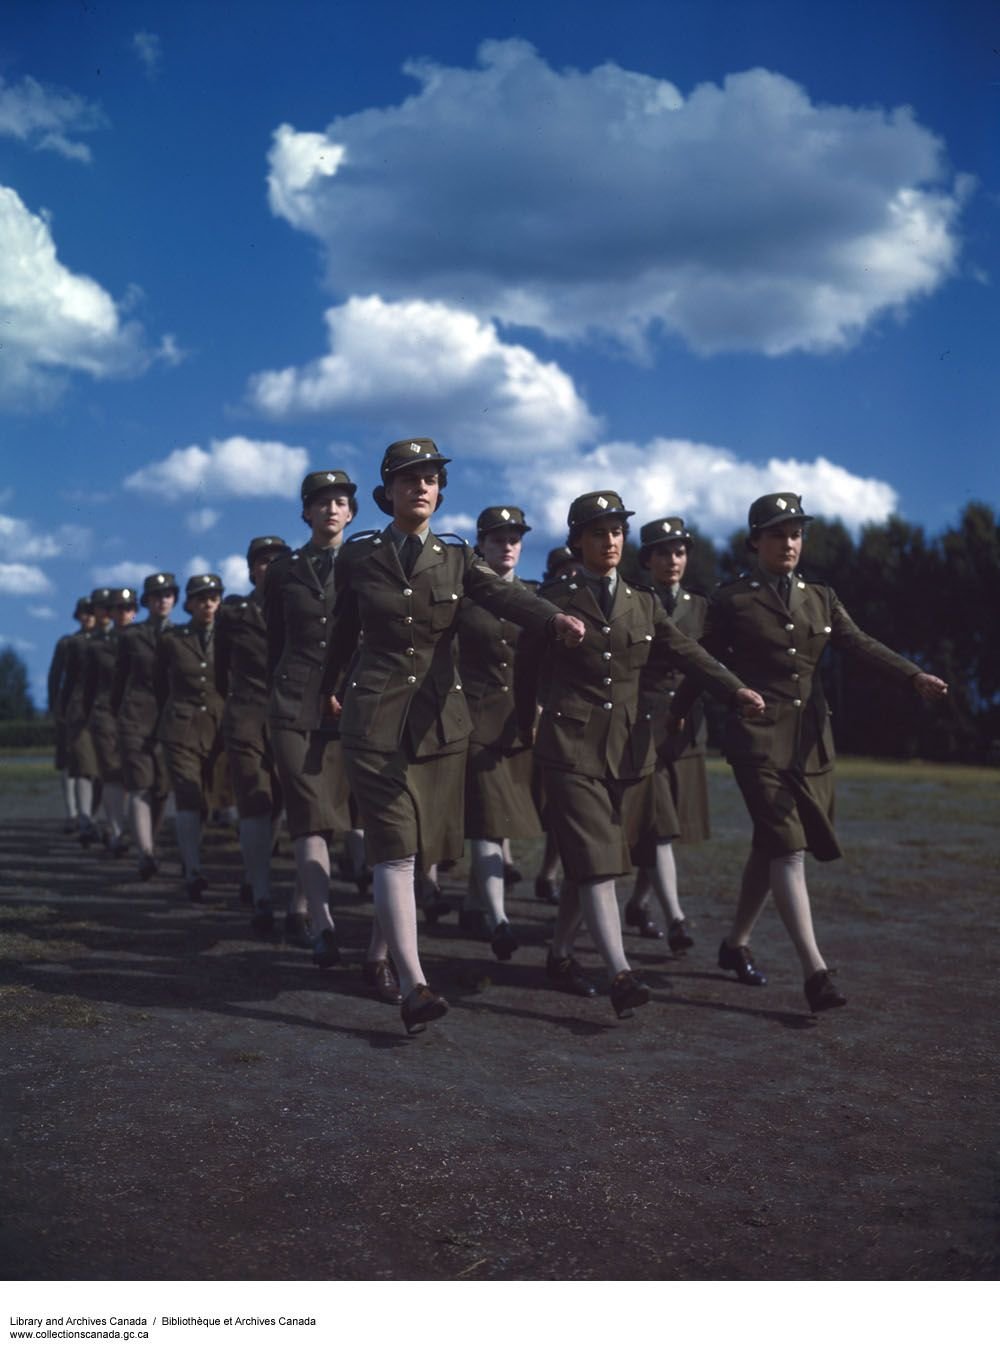 Pin on WW2 color photos and films